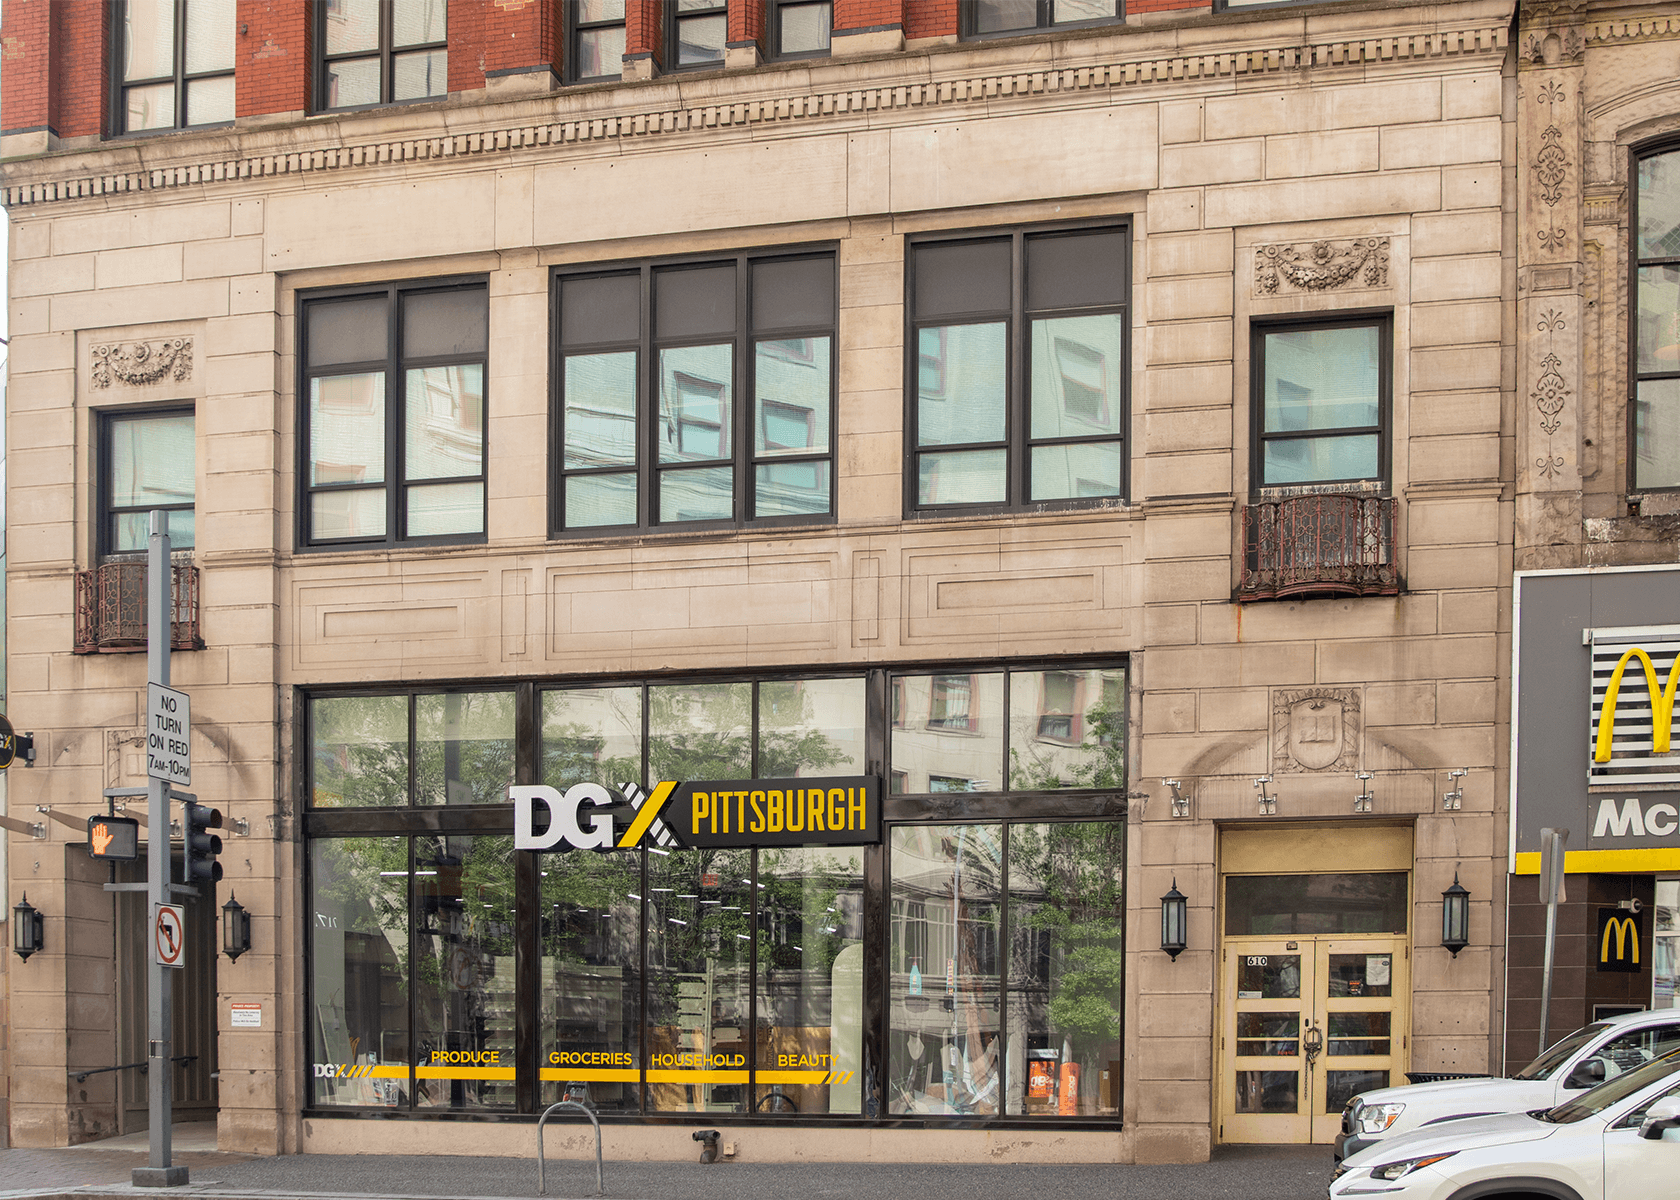 exterior view of 610 Wood Street in Downtown Pittsburgh